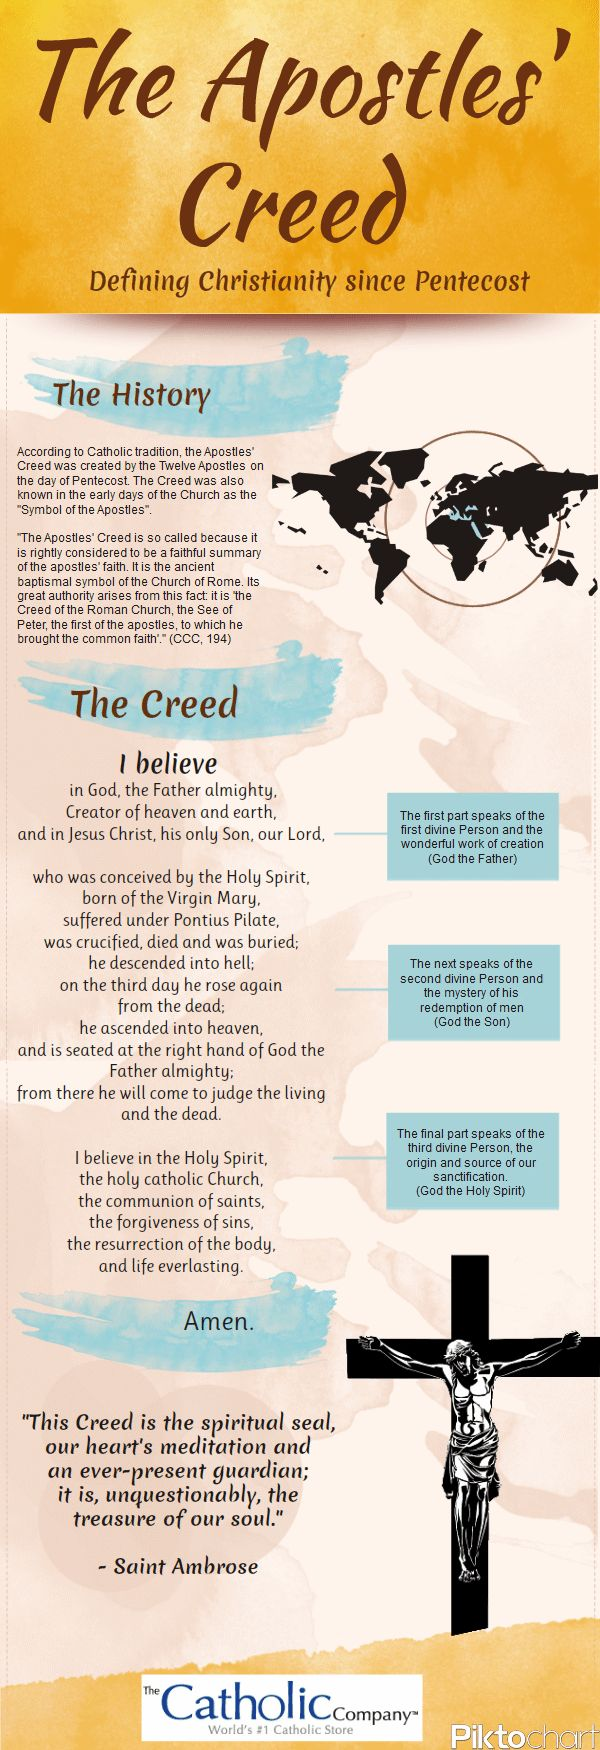 The Apostle's Creed Infographic: The history of the creed and its meaning.